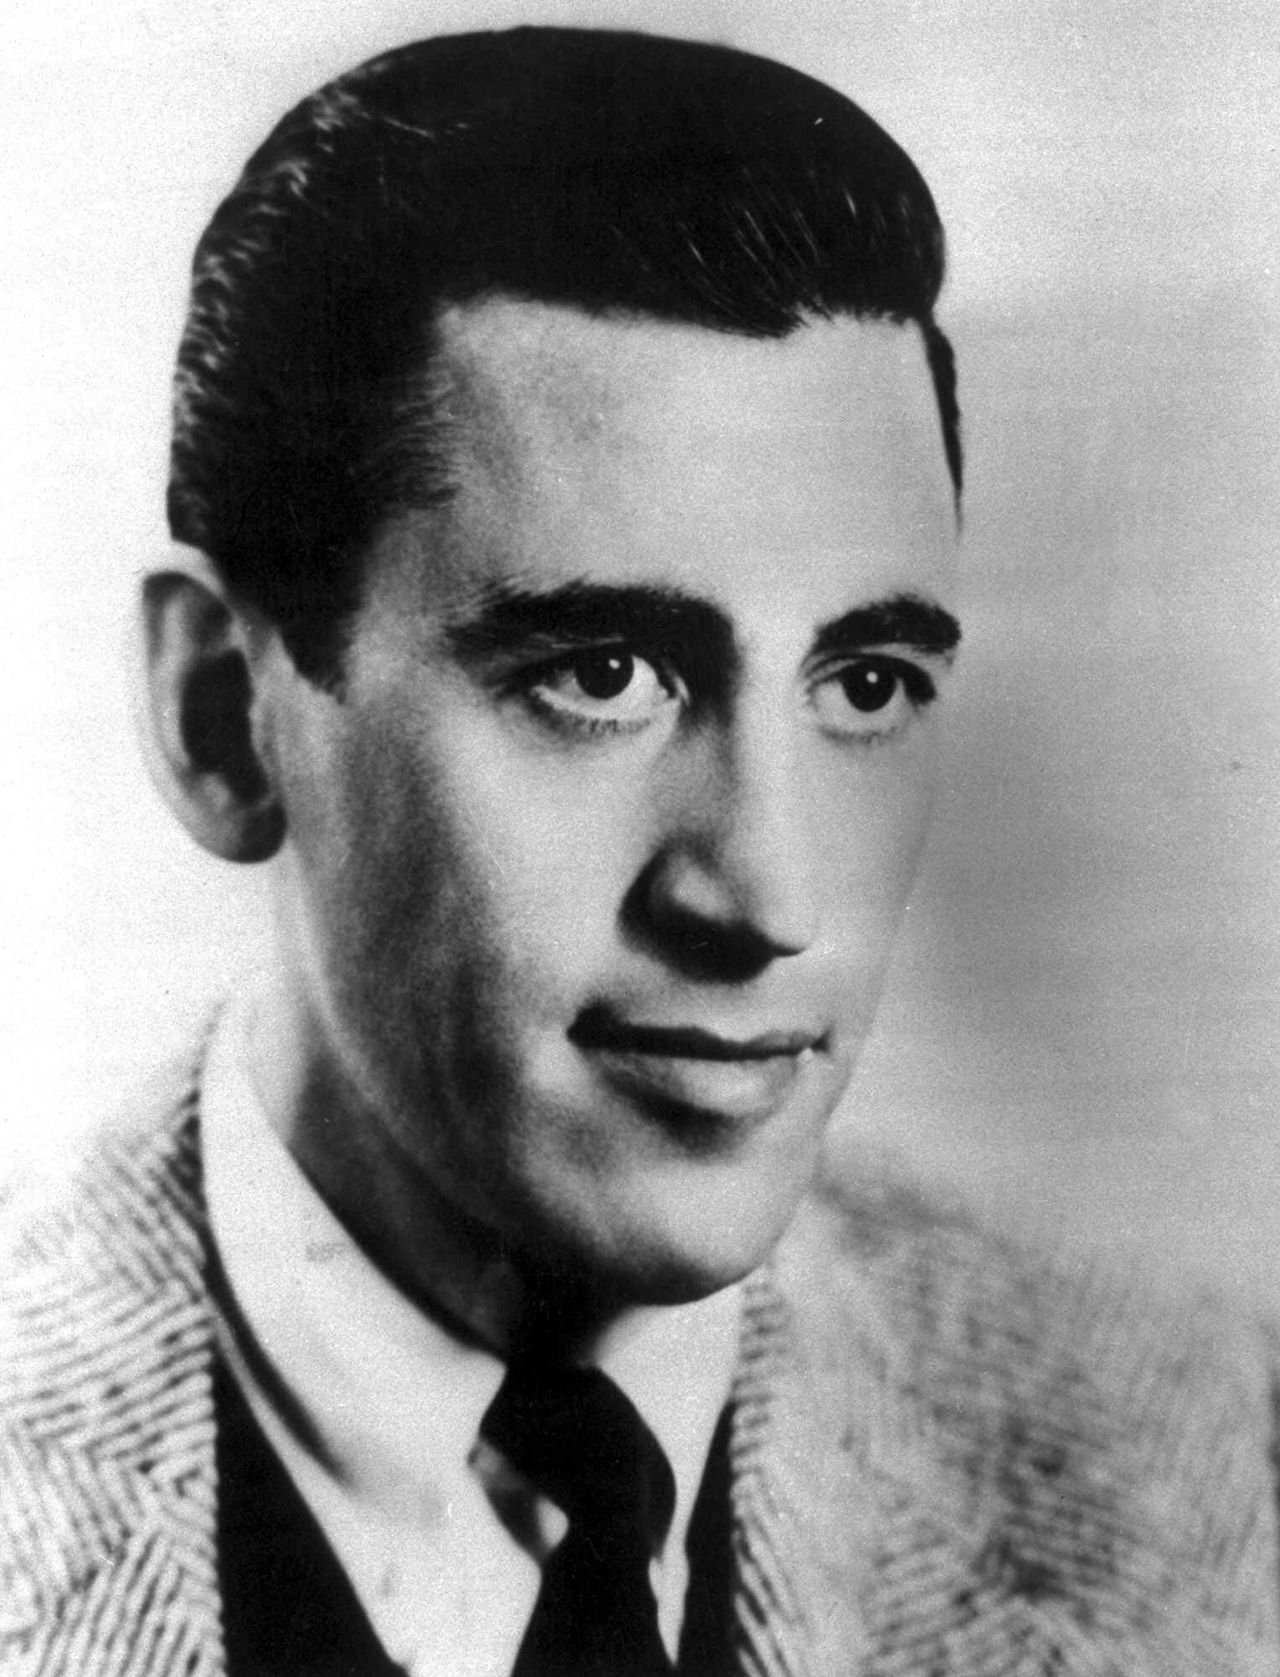 """**FILE**J.D. Salinger, author of """"The Catcher in the Rye"""", """"Nine Stories"""", and """"Franny and Zooey"""" is shown in a 1951 photo. A scholarship named for the writer will allow young writers with """"quirky brilliance"""" to literally follow in his footsteps at Ursinus College in Collegeville, Pa. Recipients of the newly created scholarship, announced Thursday, Jan. 19, 2006, will get to live in Salinger's old dorm room at Ursinus, where the author spent the fall semester of 1938.(AP Photo)"""